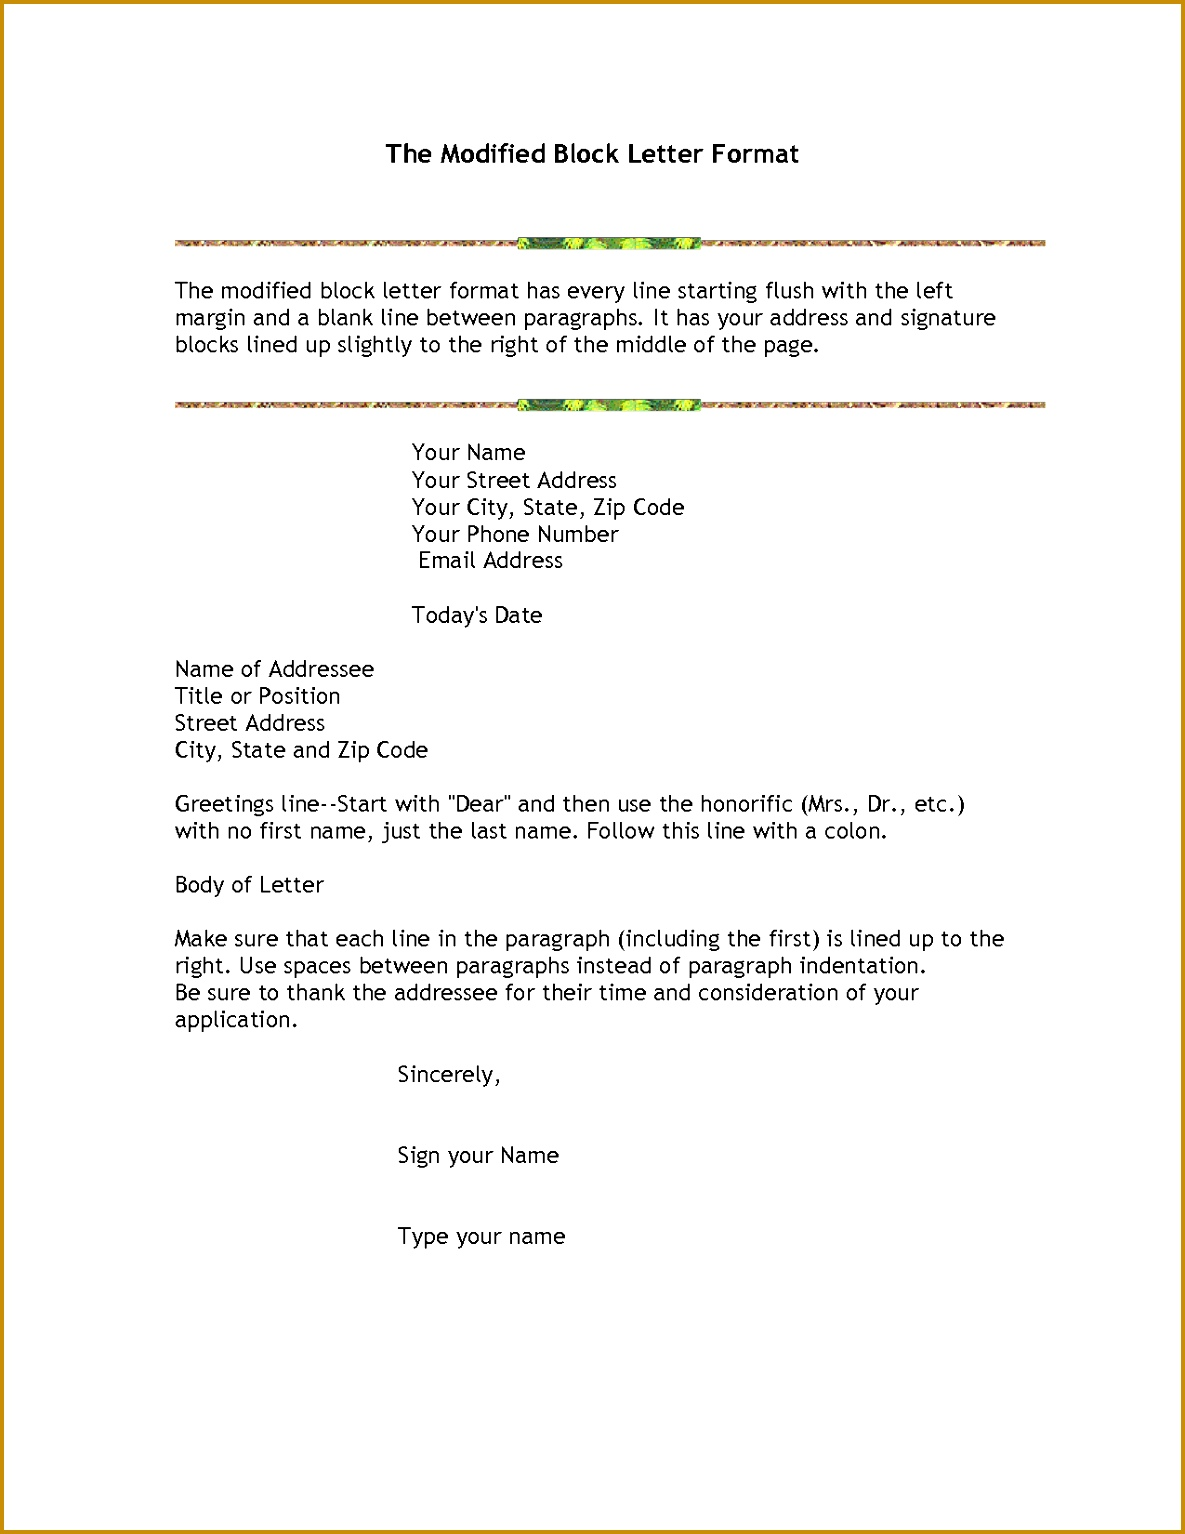 Awesome Collection of Definition Modified Block Style Business Letter About Letter 15341185